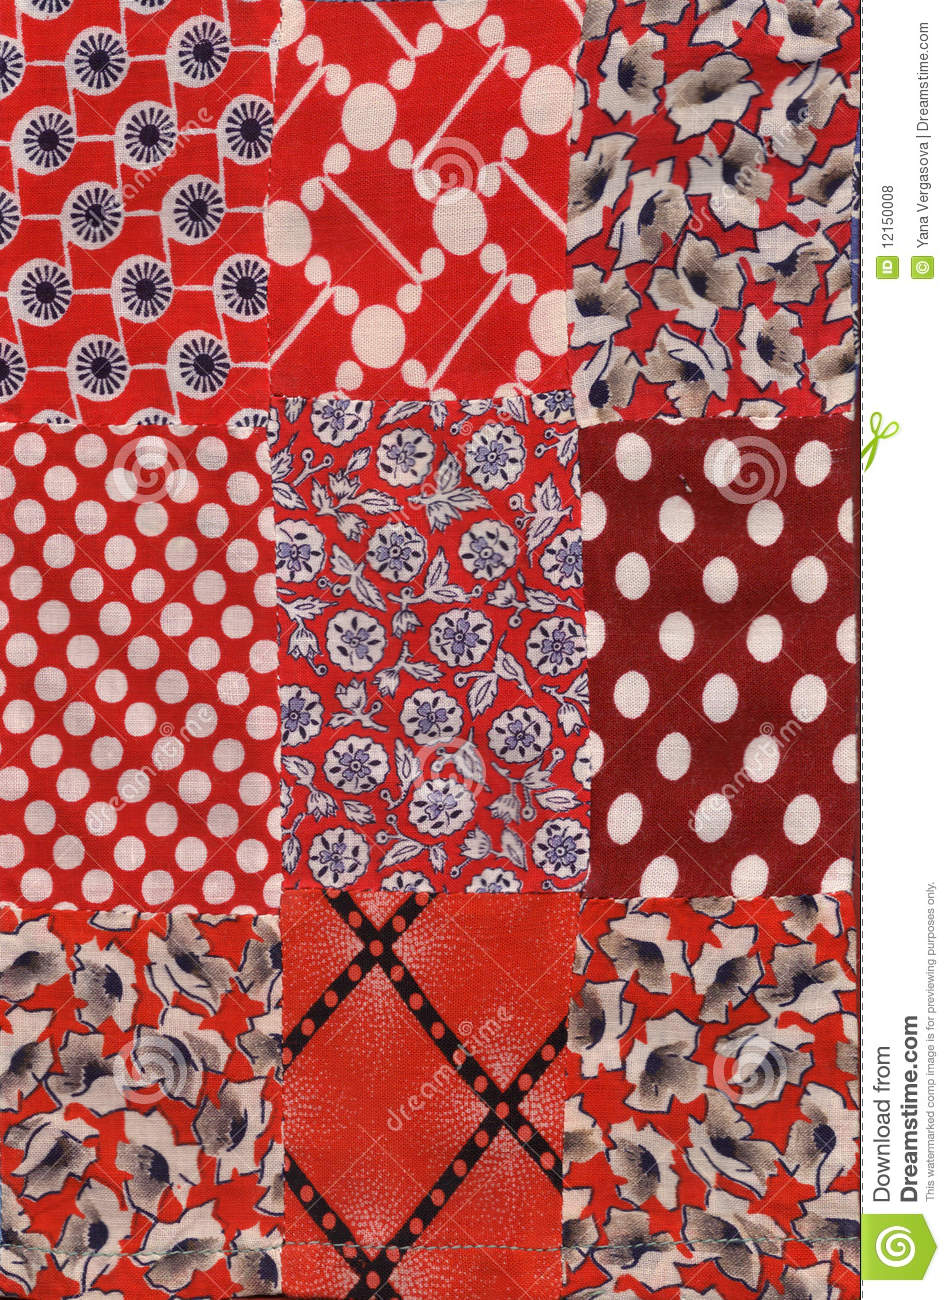 Red quilt pattern royalty free stock photos image 12150008 for Red door design quilts